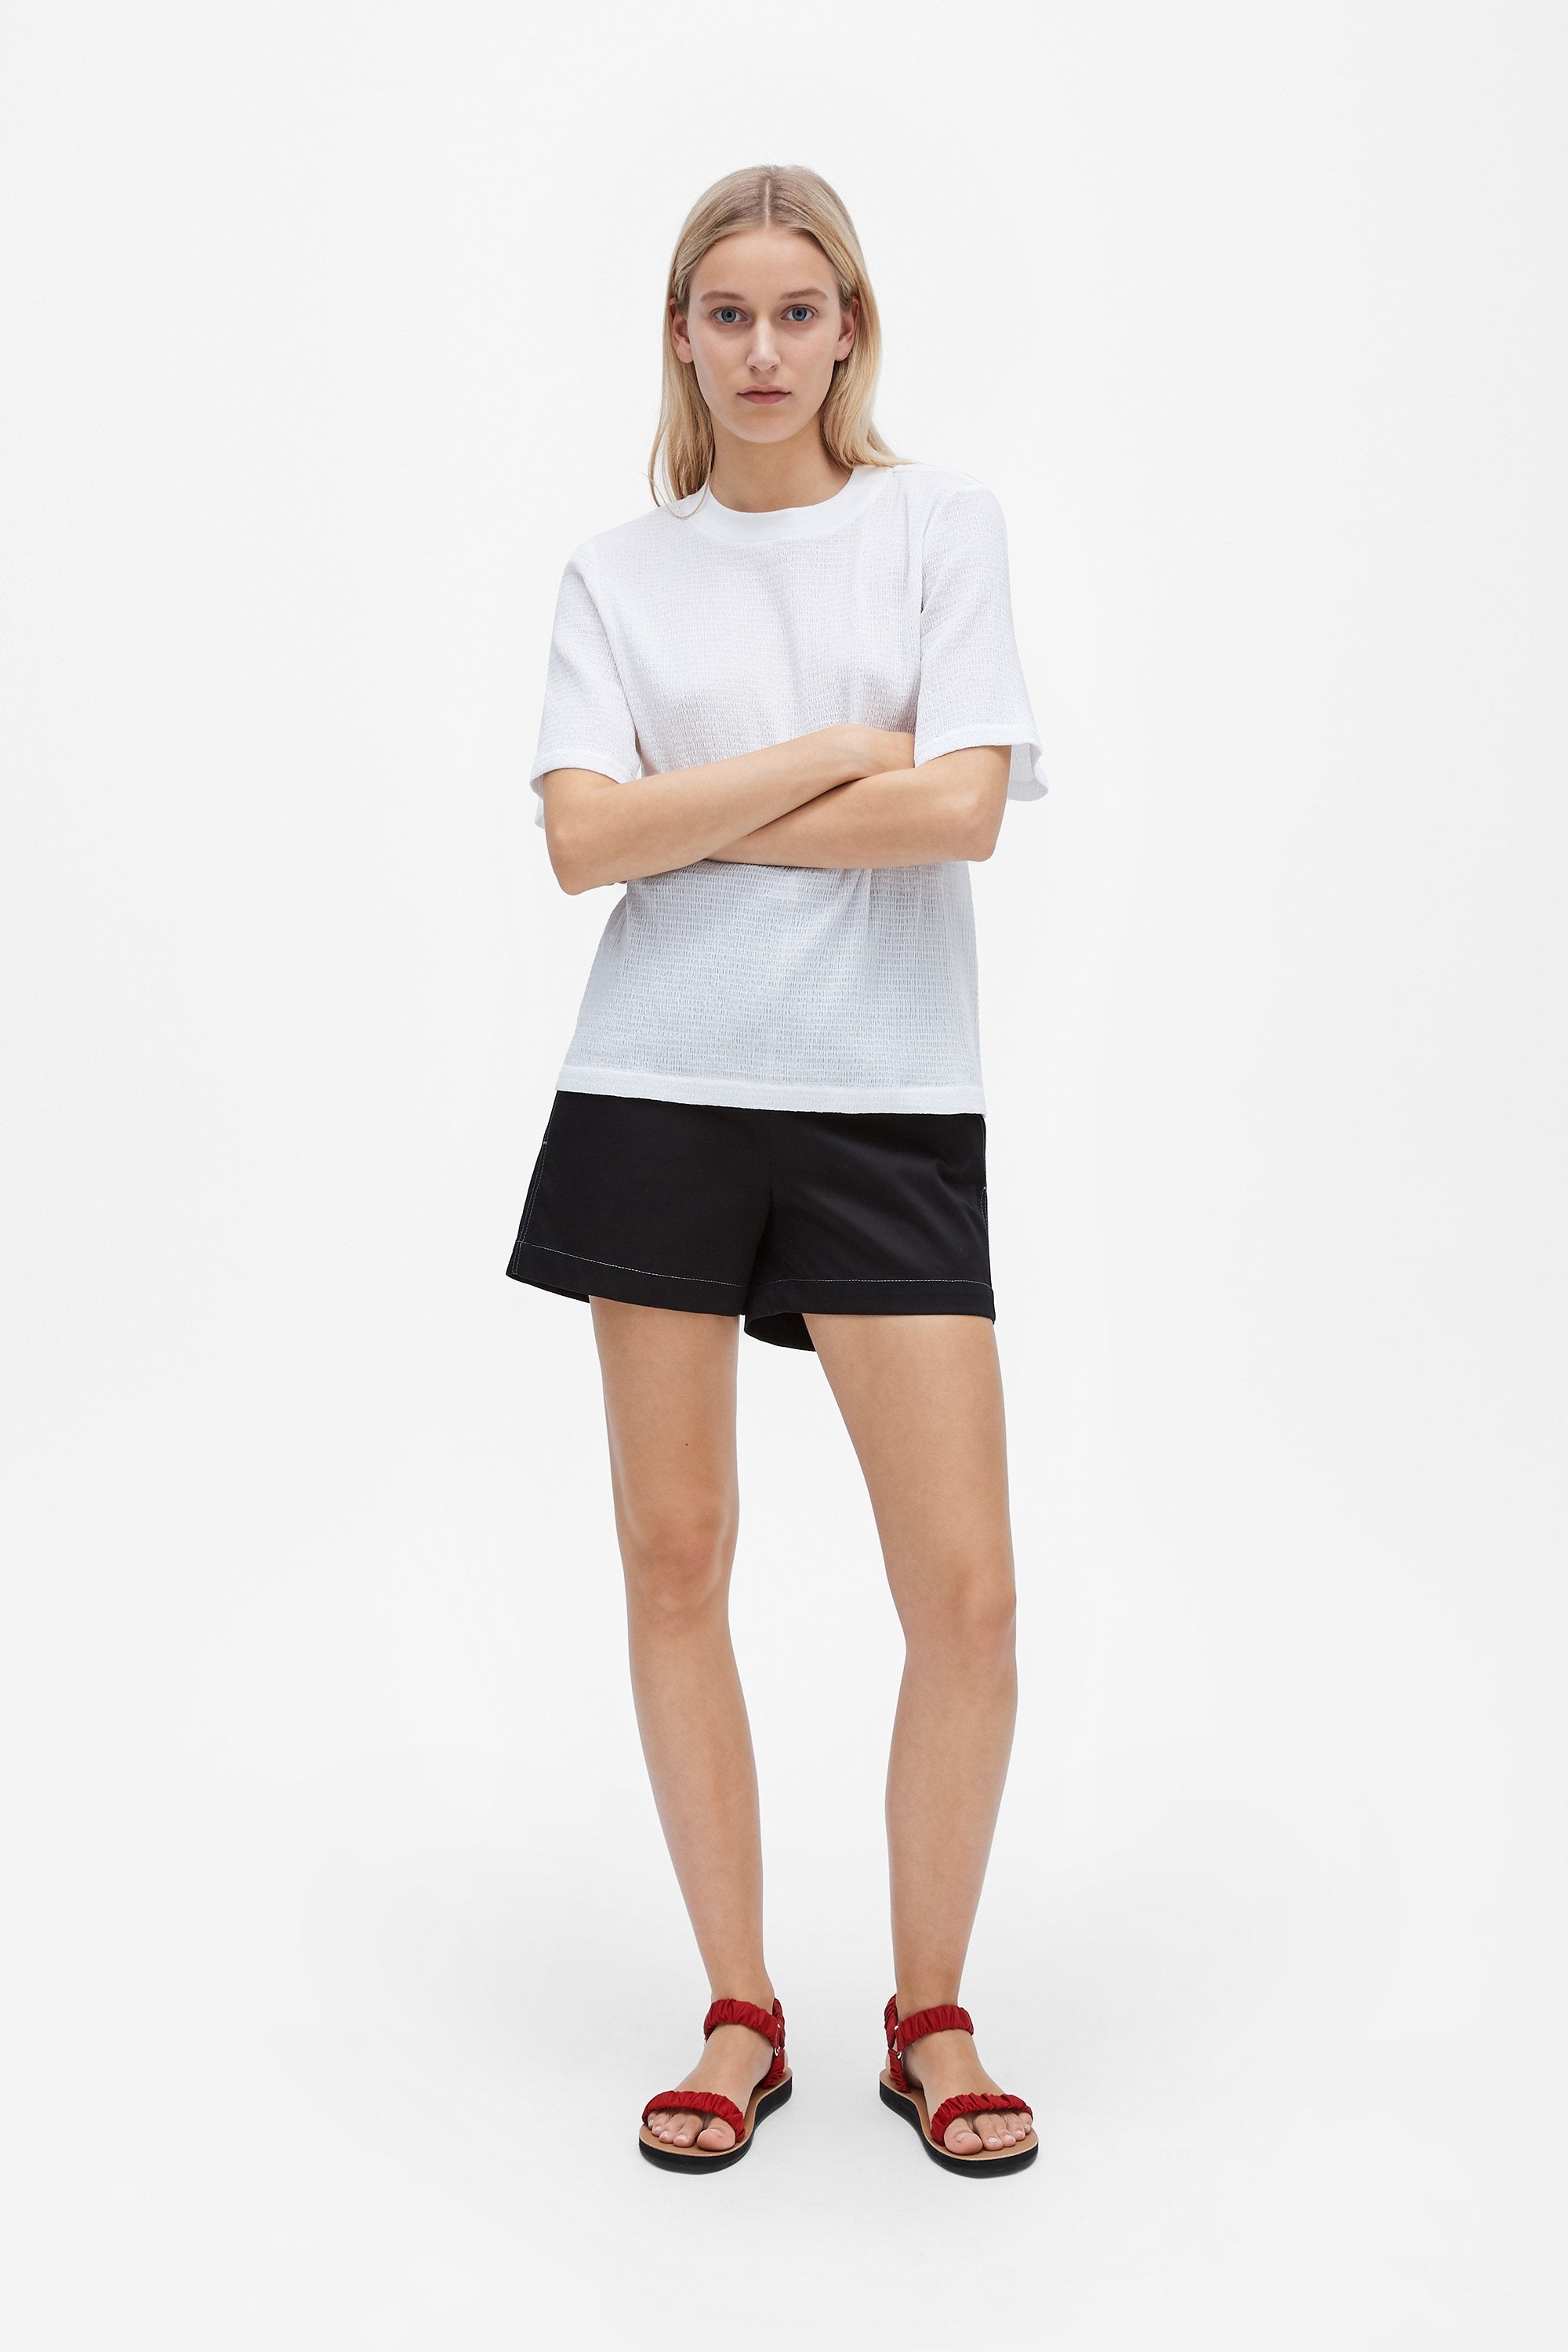 Classic t-shirt - Shirred voile - White - Resortwear top - Her Line